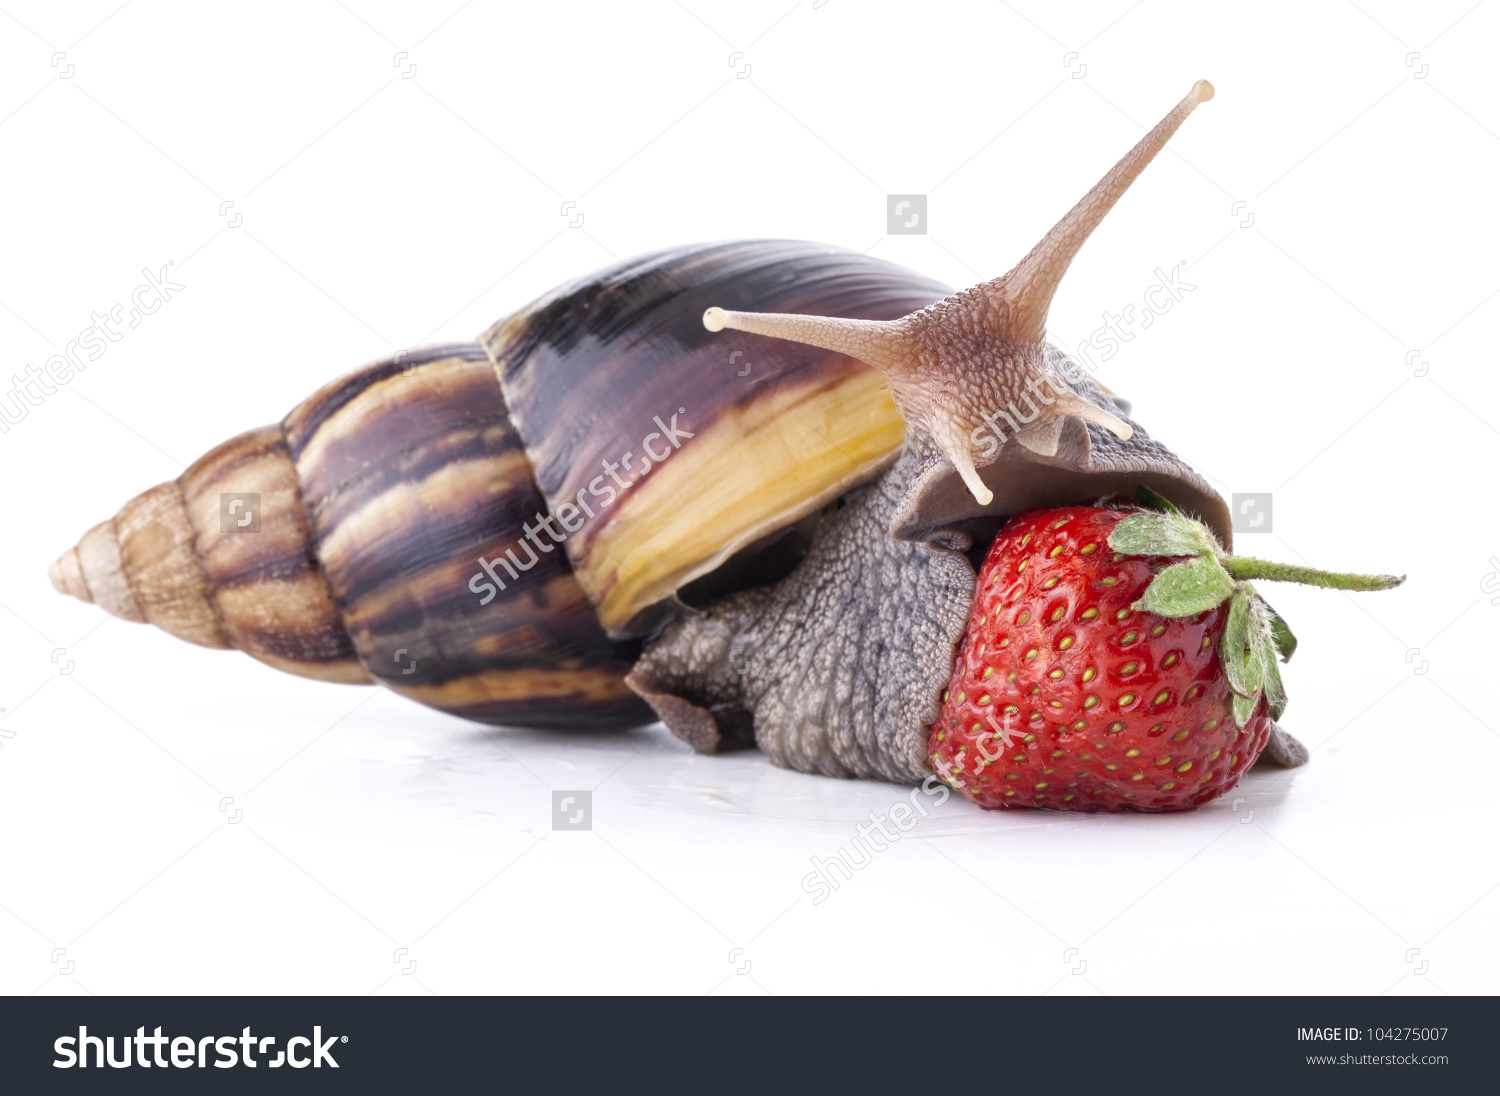 Giant african land snail clipart.